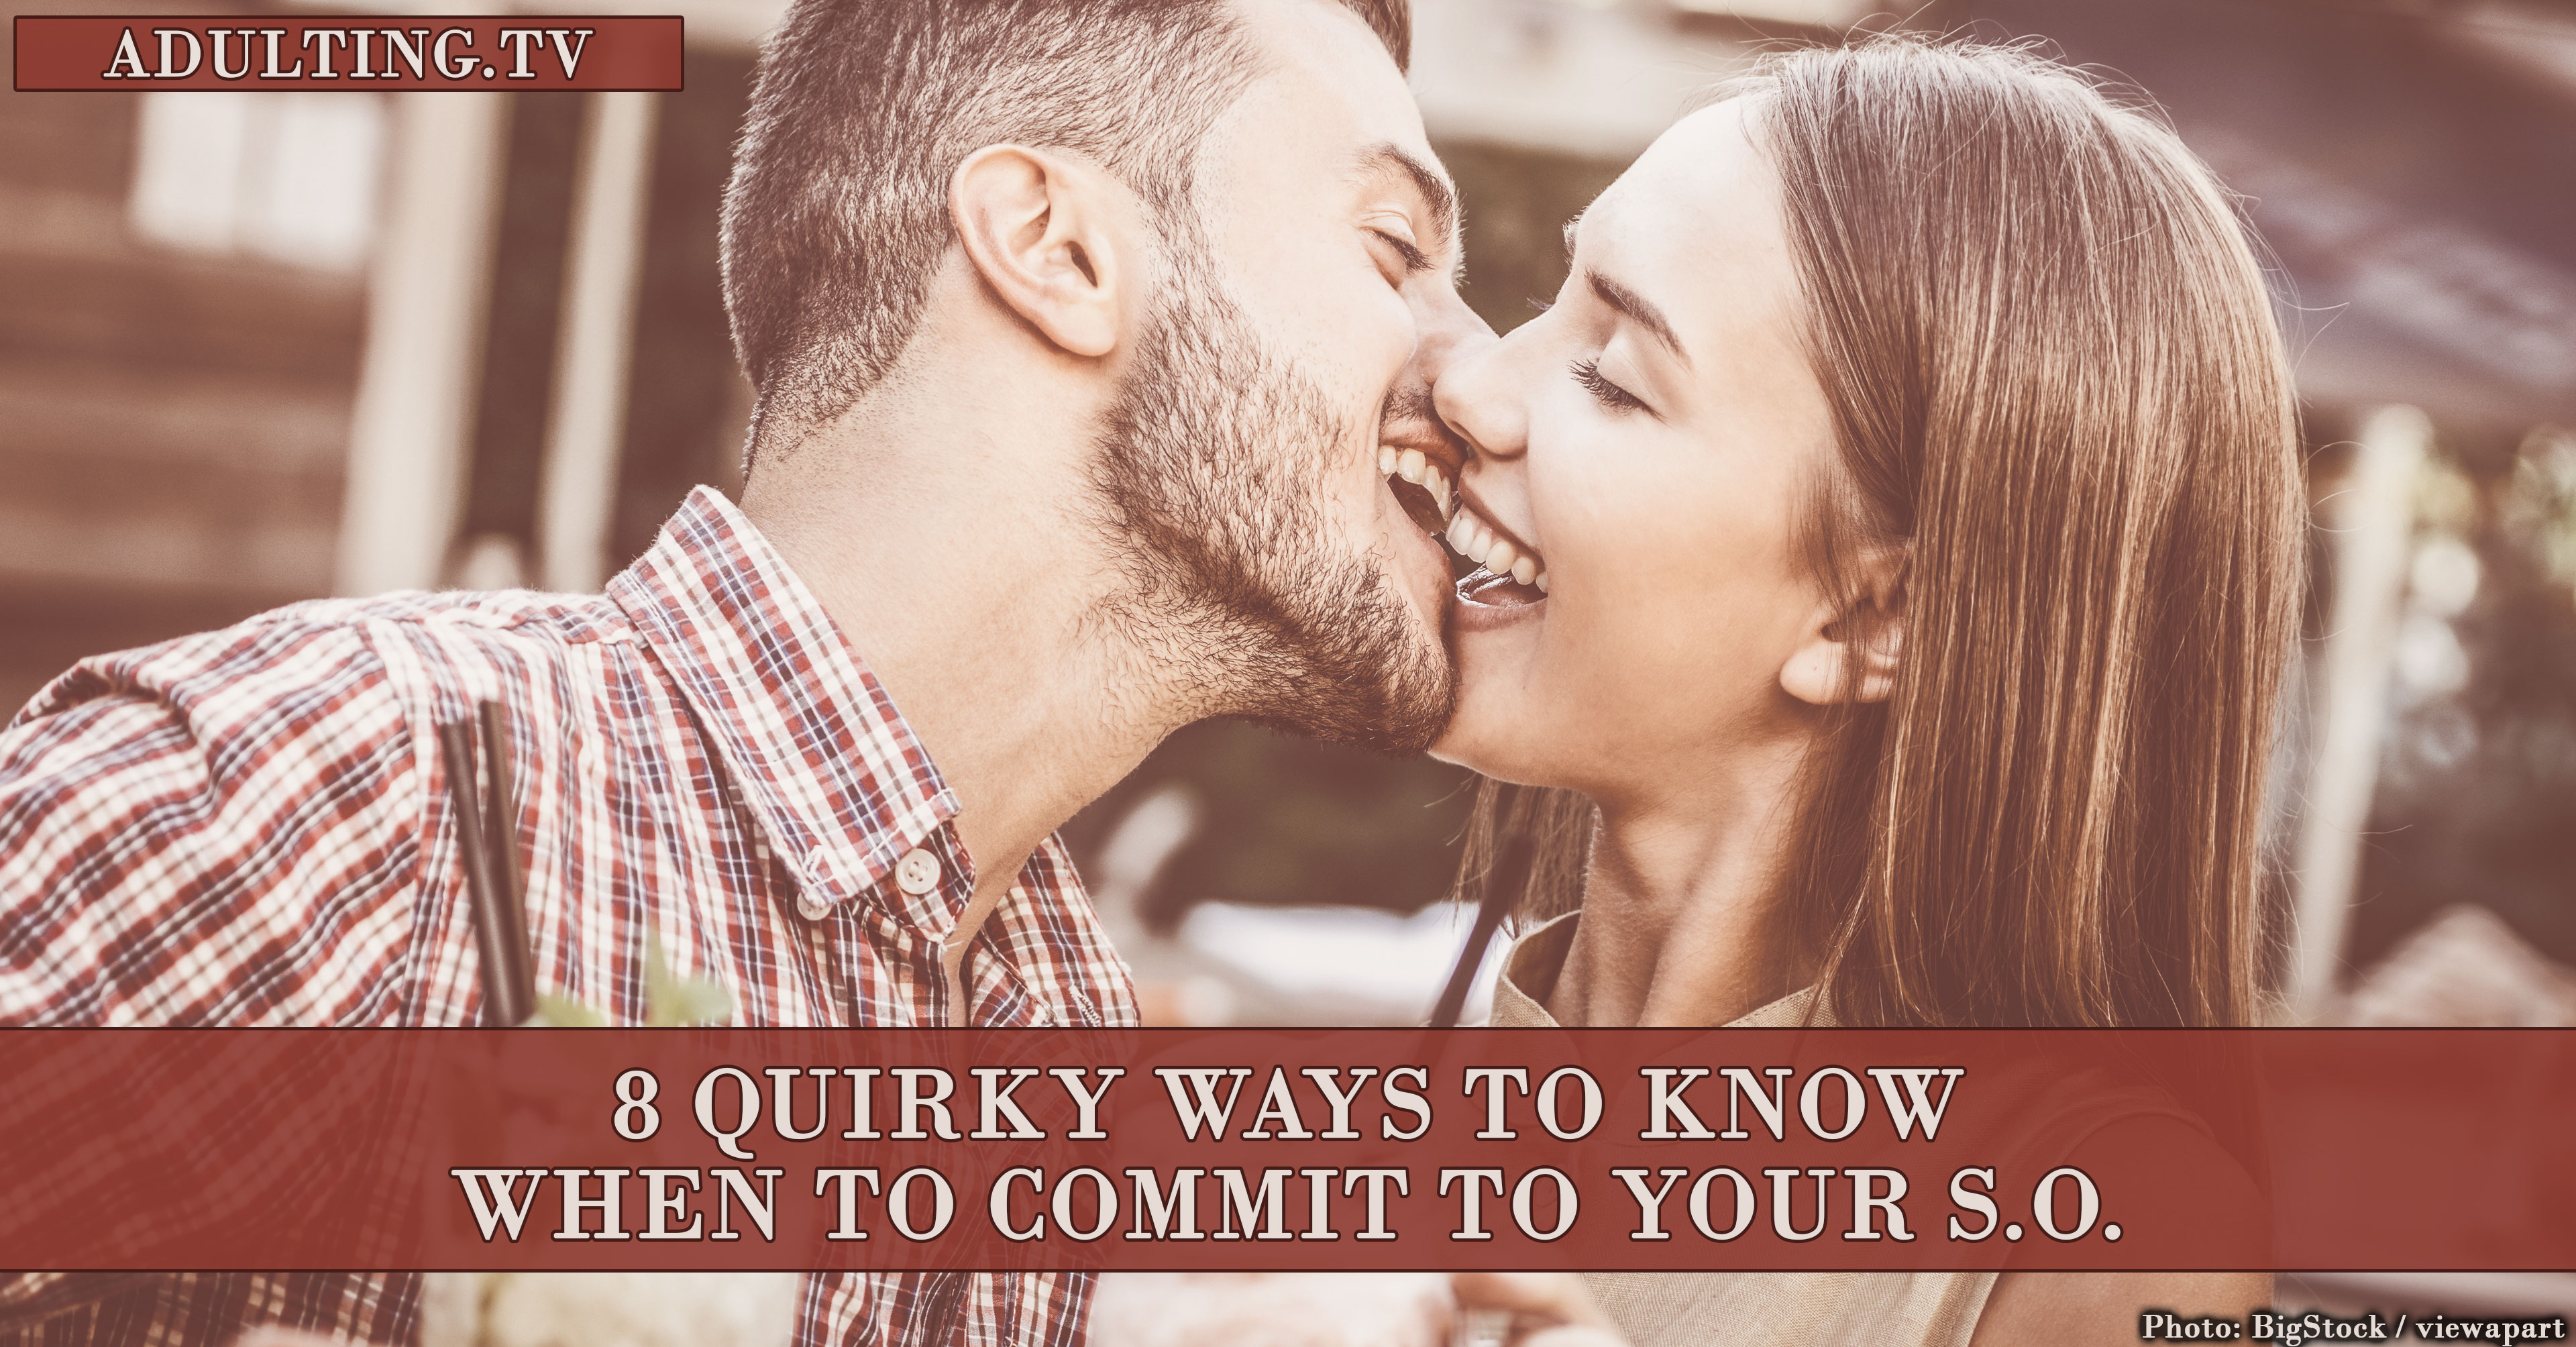 8 Quirky Ways to Know When to Commit to Your S.O.